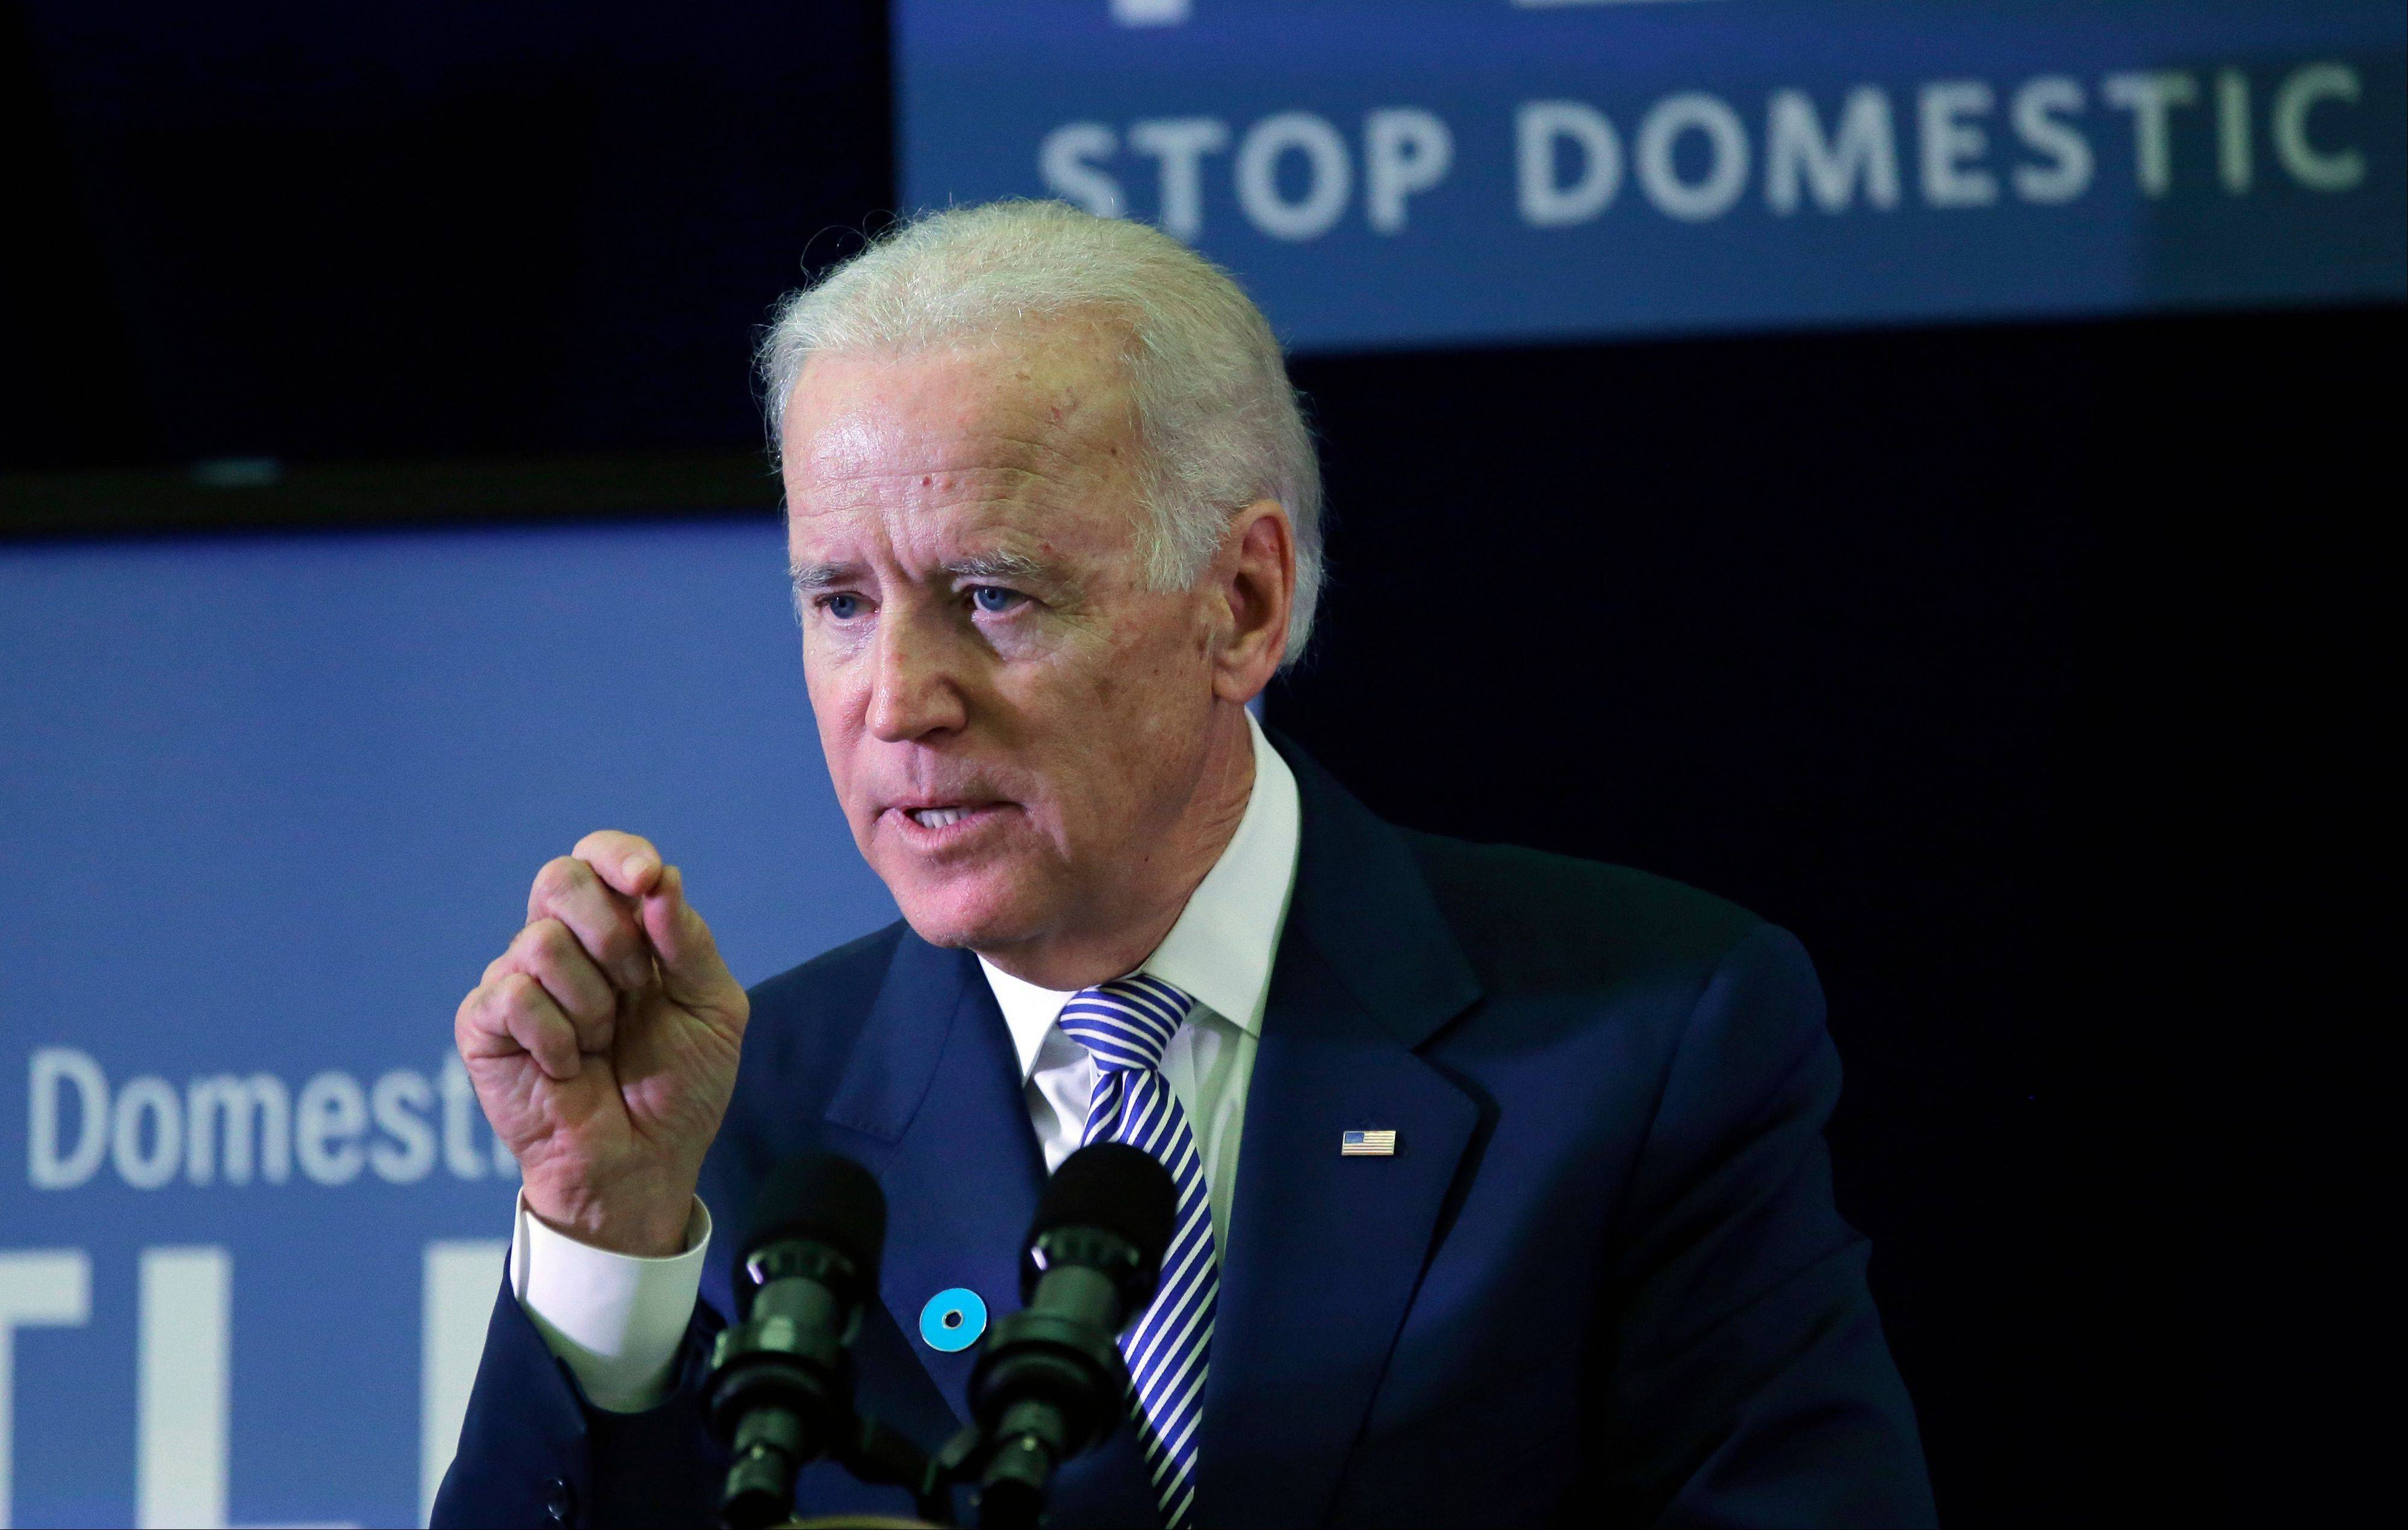 A new book asserts the idea of replacing Vice President Joe Biden with Hillary Rodham Clinton was floated in President Barack Obama's 2012 re-election campaign, but the former White House chief of staff denies it.